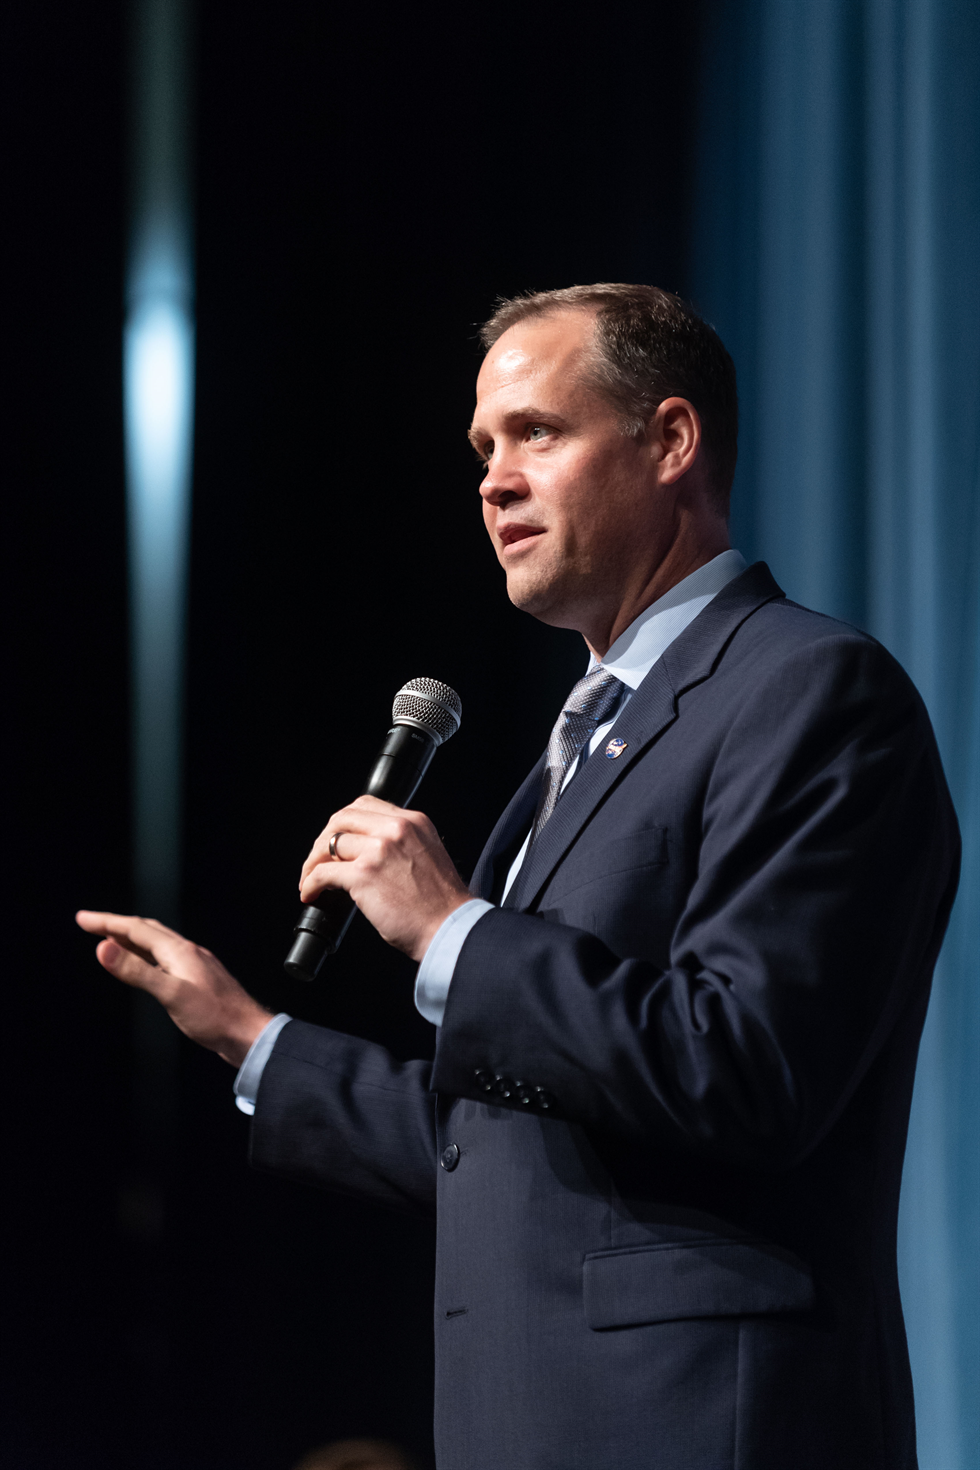 NASA Administrator Jim Bridenstine addresses the Johnson Space Center team for the first time, in person, on Aug. 2. Image Credit: NASA/James Blair